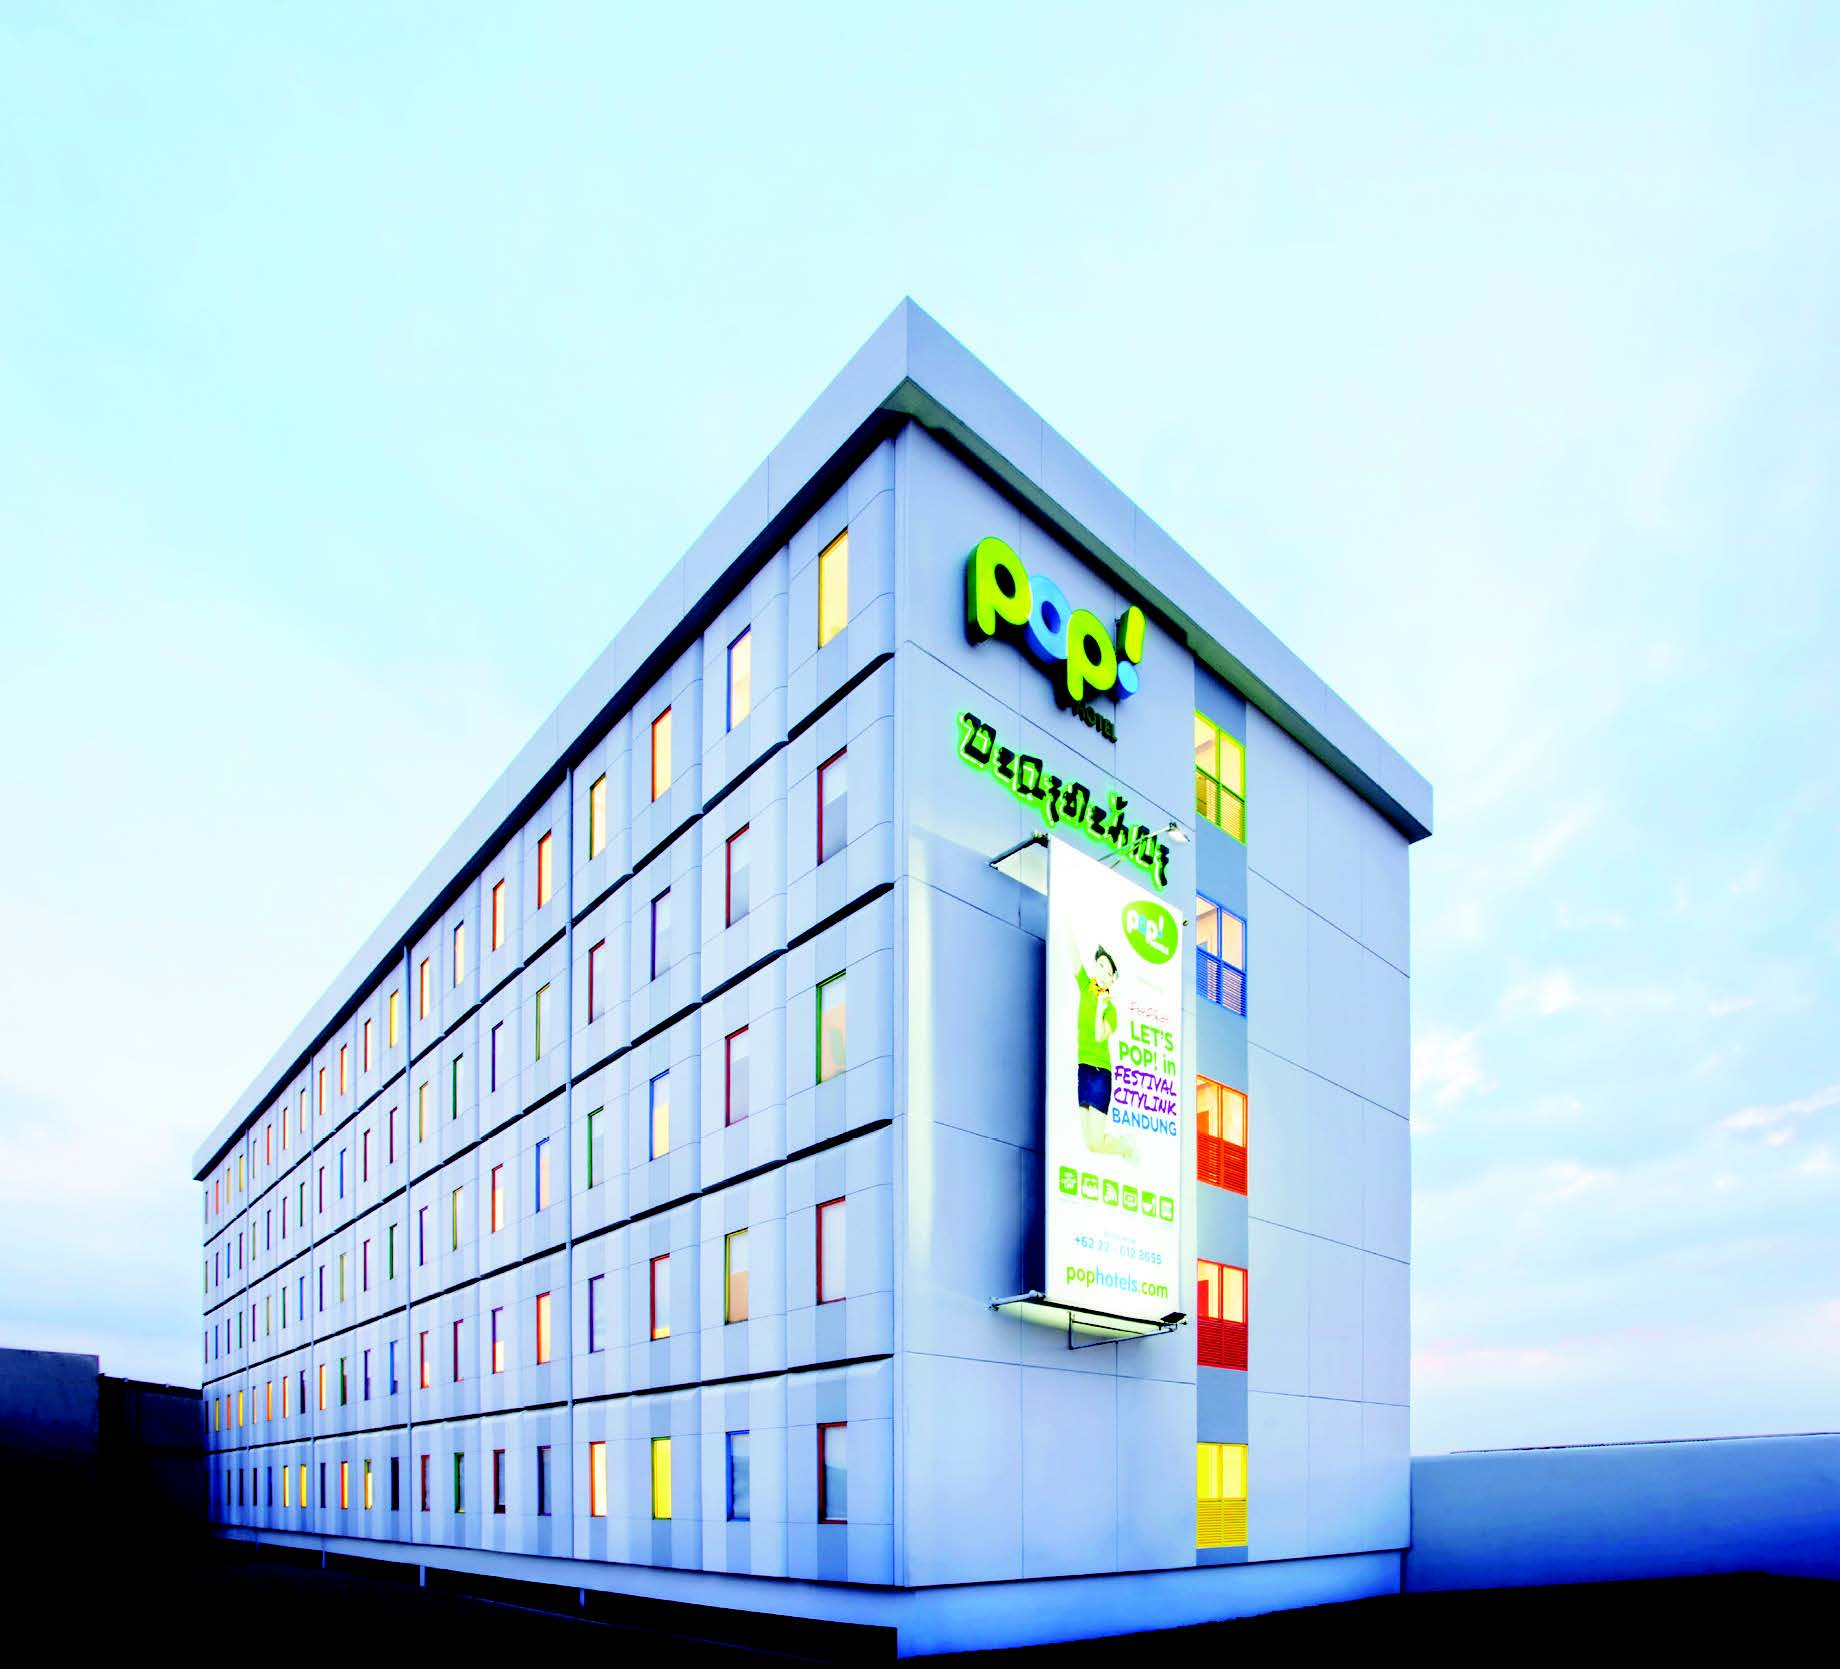 A BUDGET HOTEL FOR SMART & ECO-FRIENDLY TRAVELLERS POP! HOTEL FESTIVAL CITYLINK BANDUNG